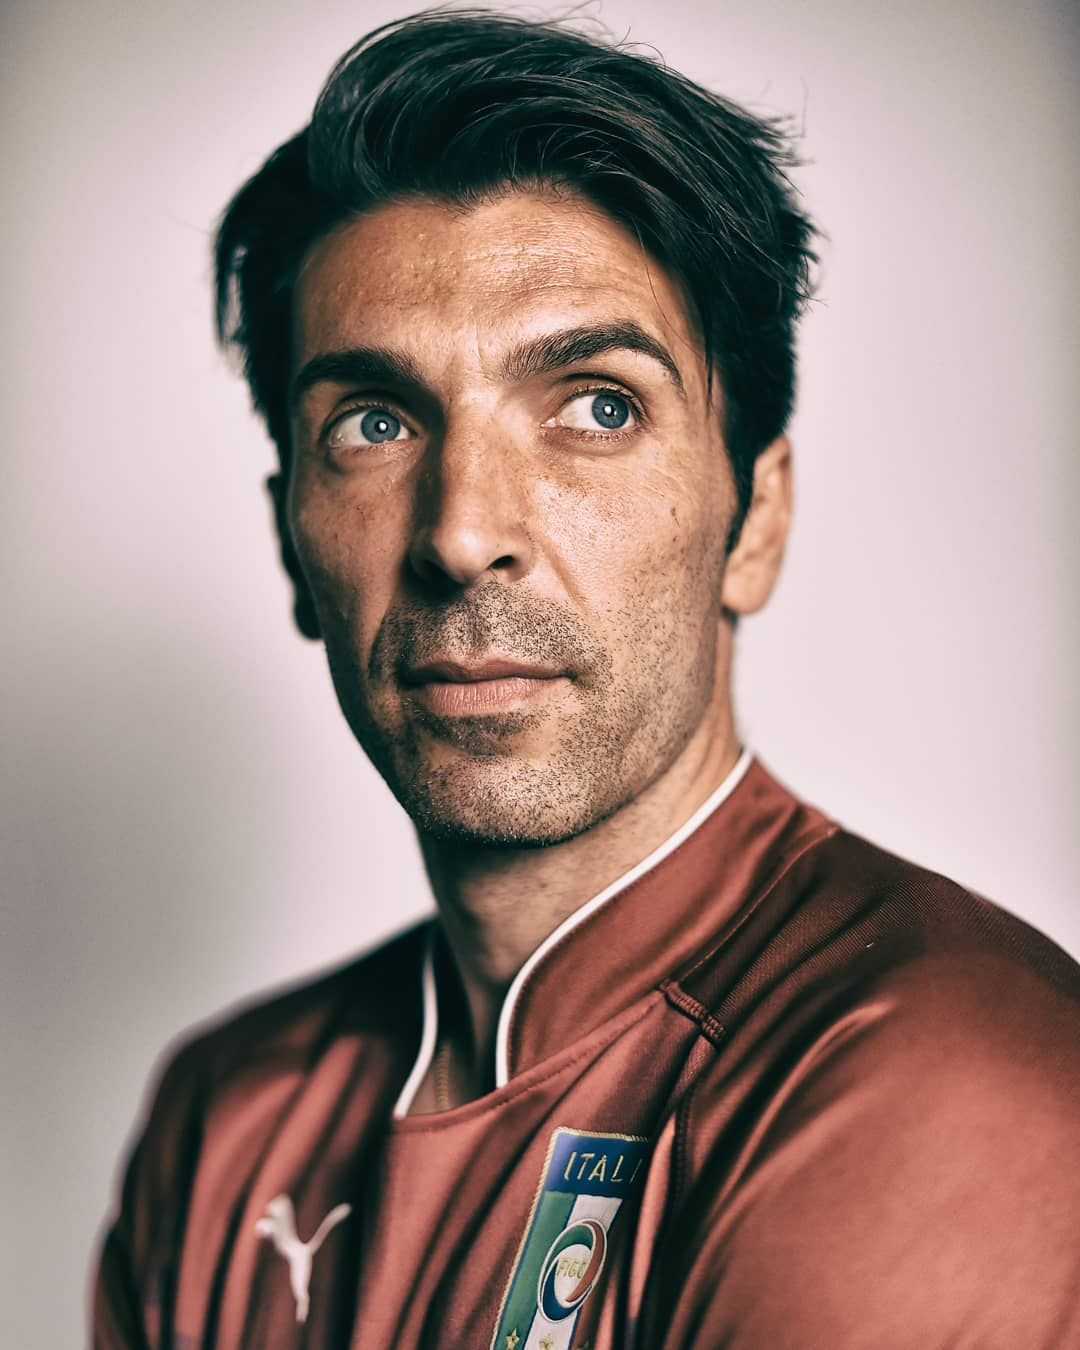 Fifa World Cup On Instagram Onthisday In 1997 A 19 Year Old Gianluigibuffon Won The First Of His 176 Italy Caps As Azzu Fifa Football World Football Fifa